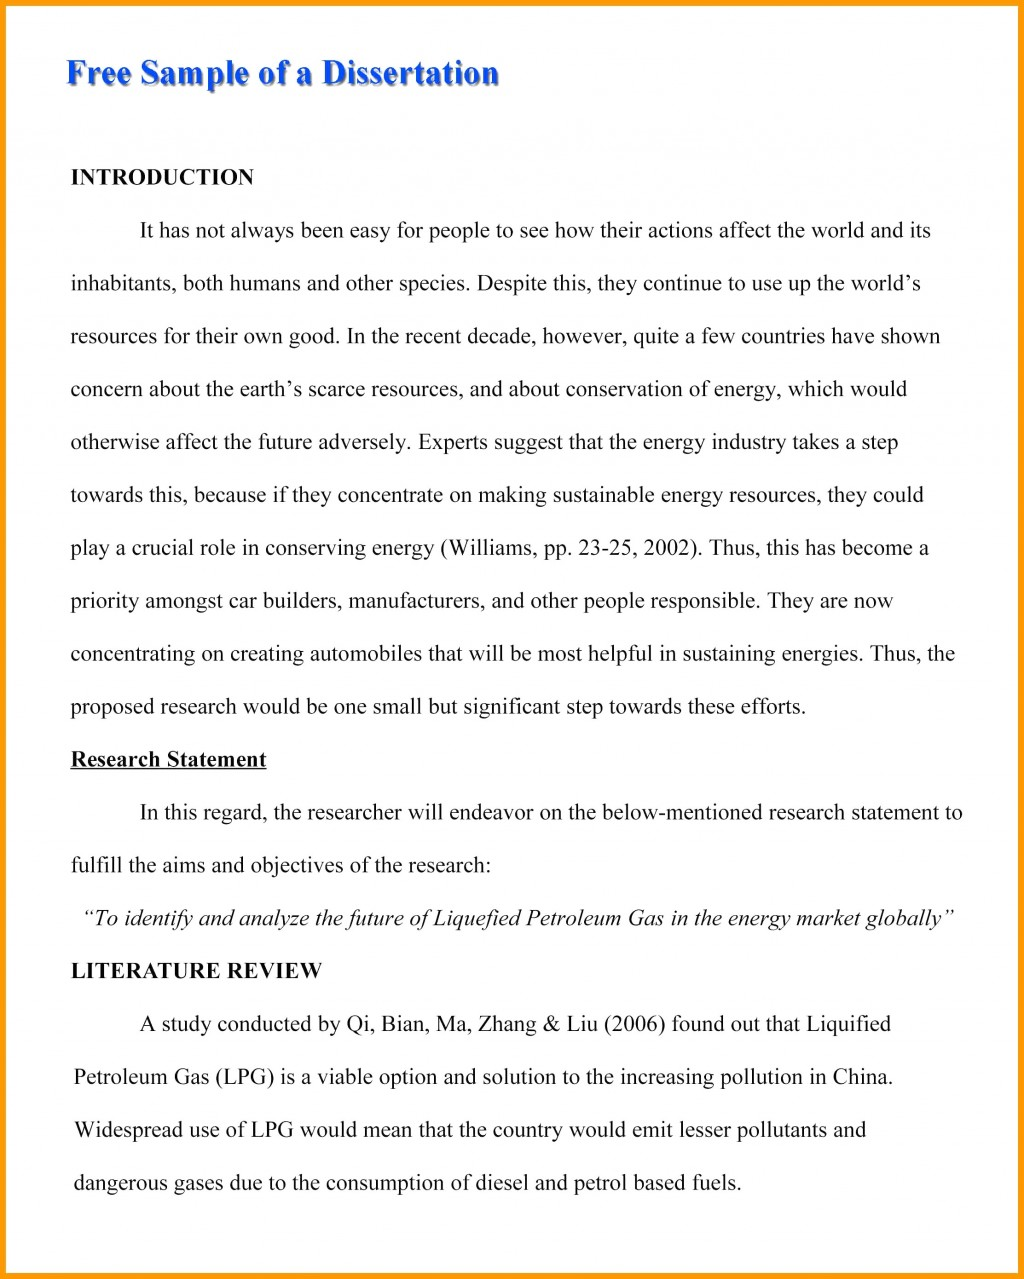 004 War On Drugs Research Paper Outline Filename Books Historical Pertaining To History Essay Impressive Unique Ideas Template Topics For High School Students Large